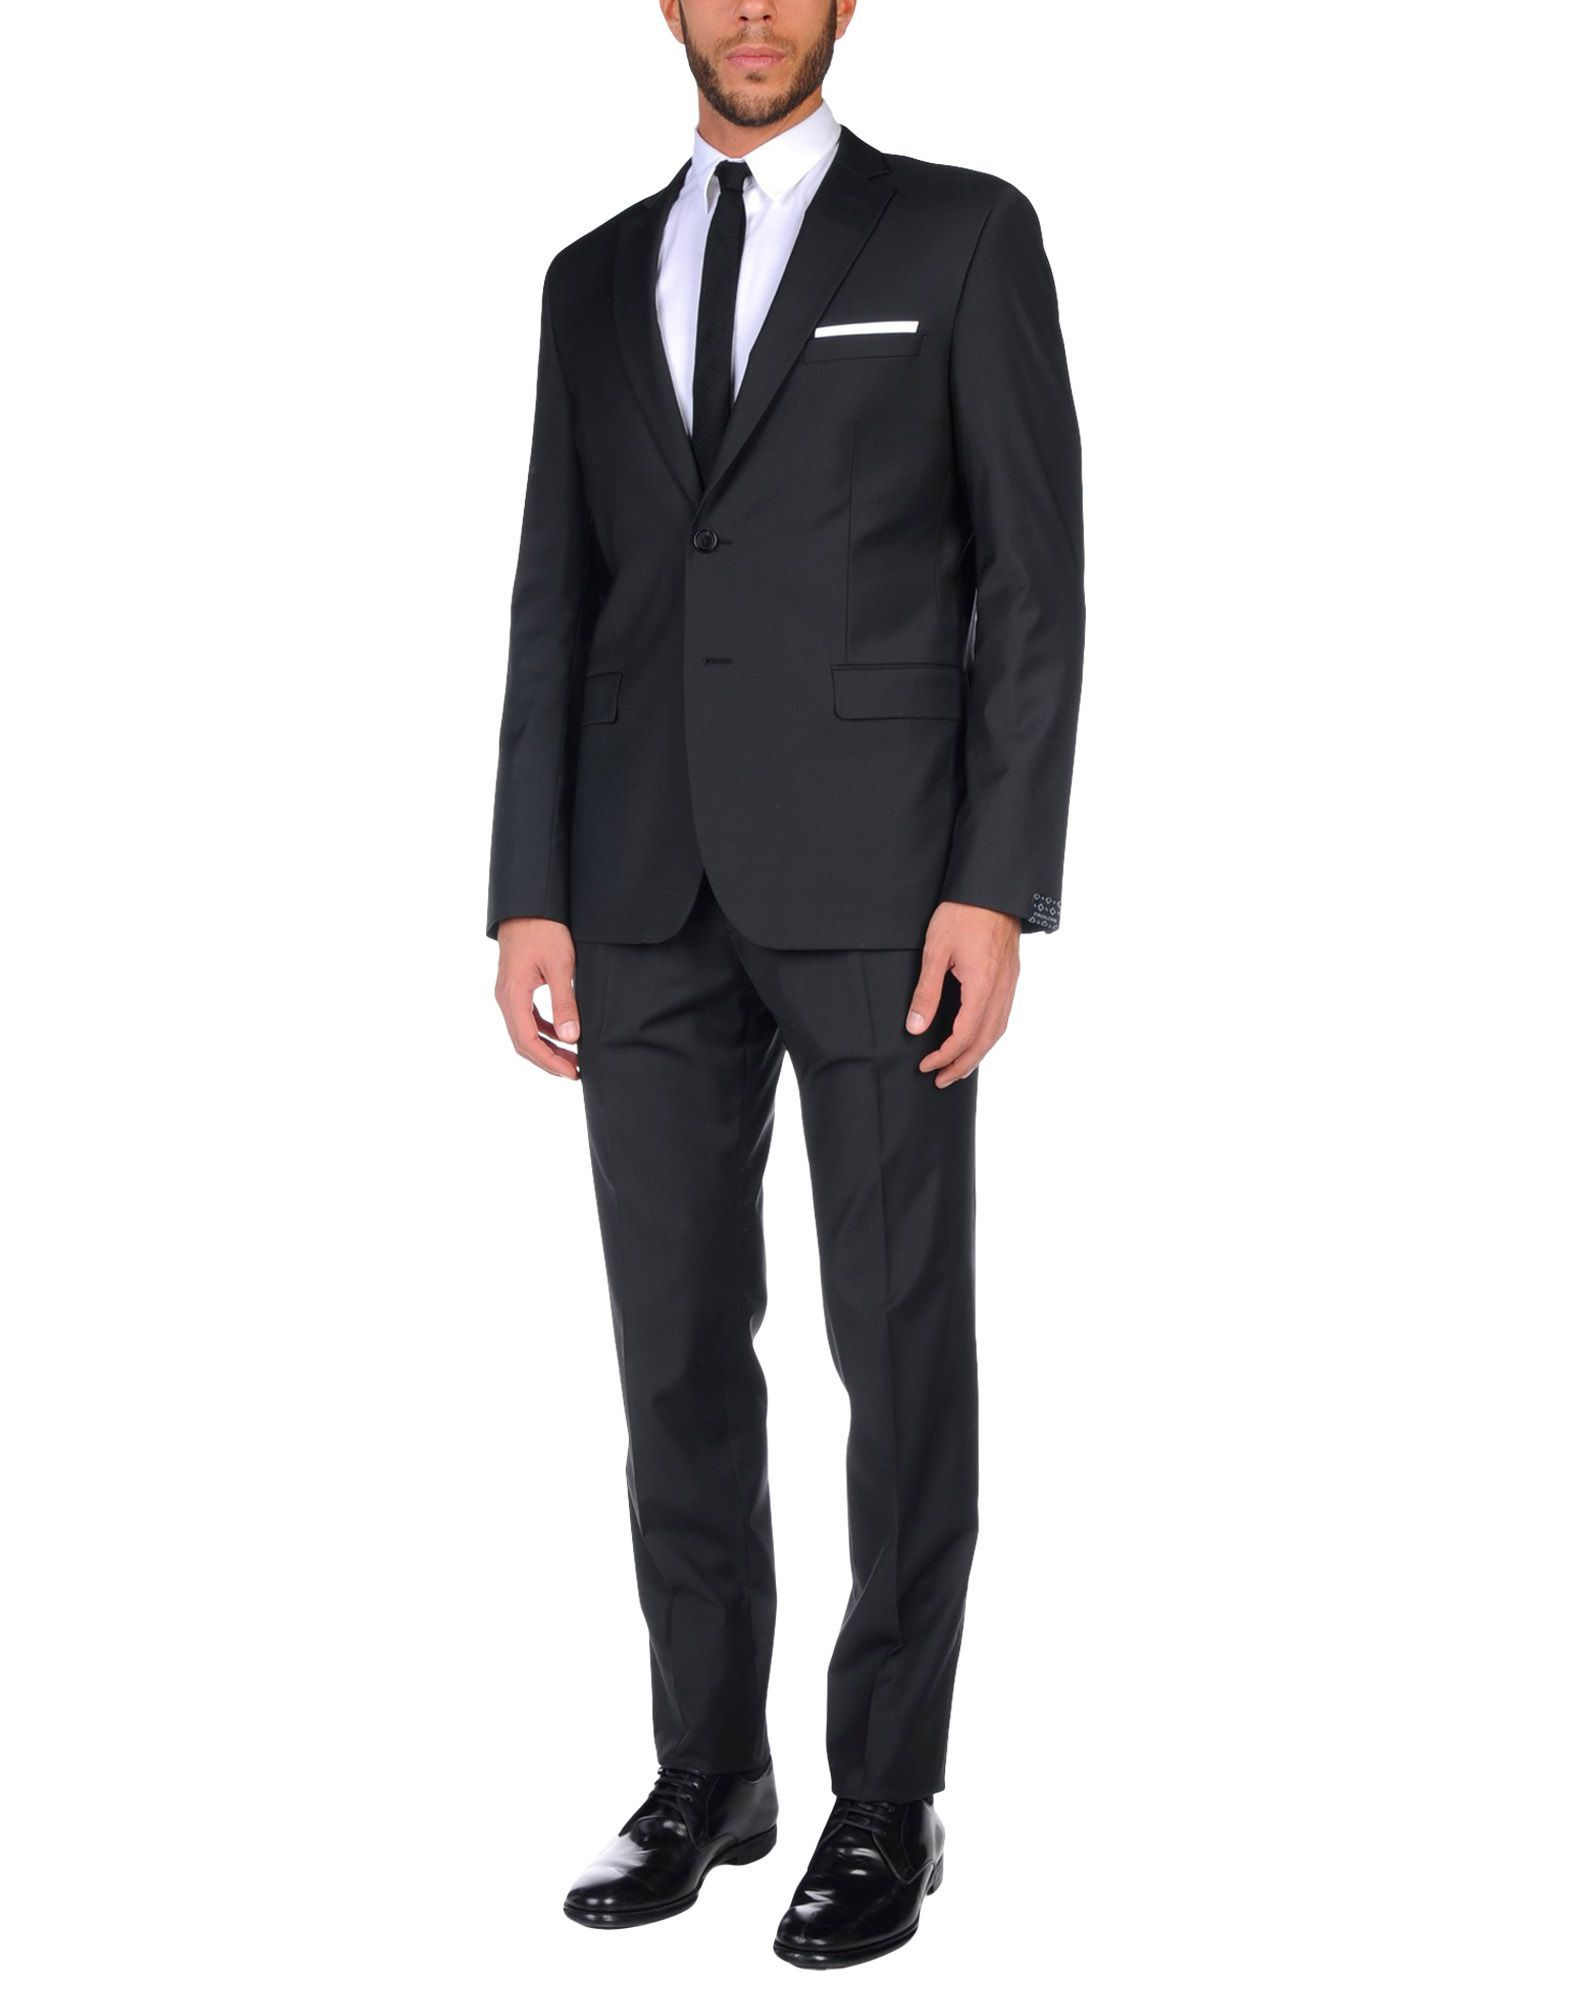 SUITS AND JACKETS Paoloni Black Man Polyester